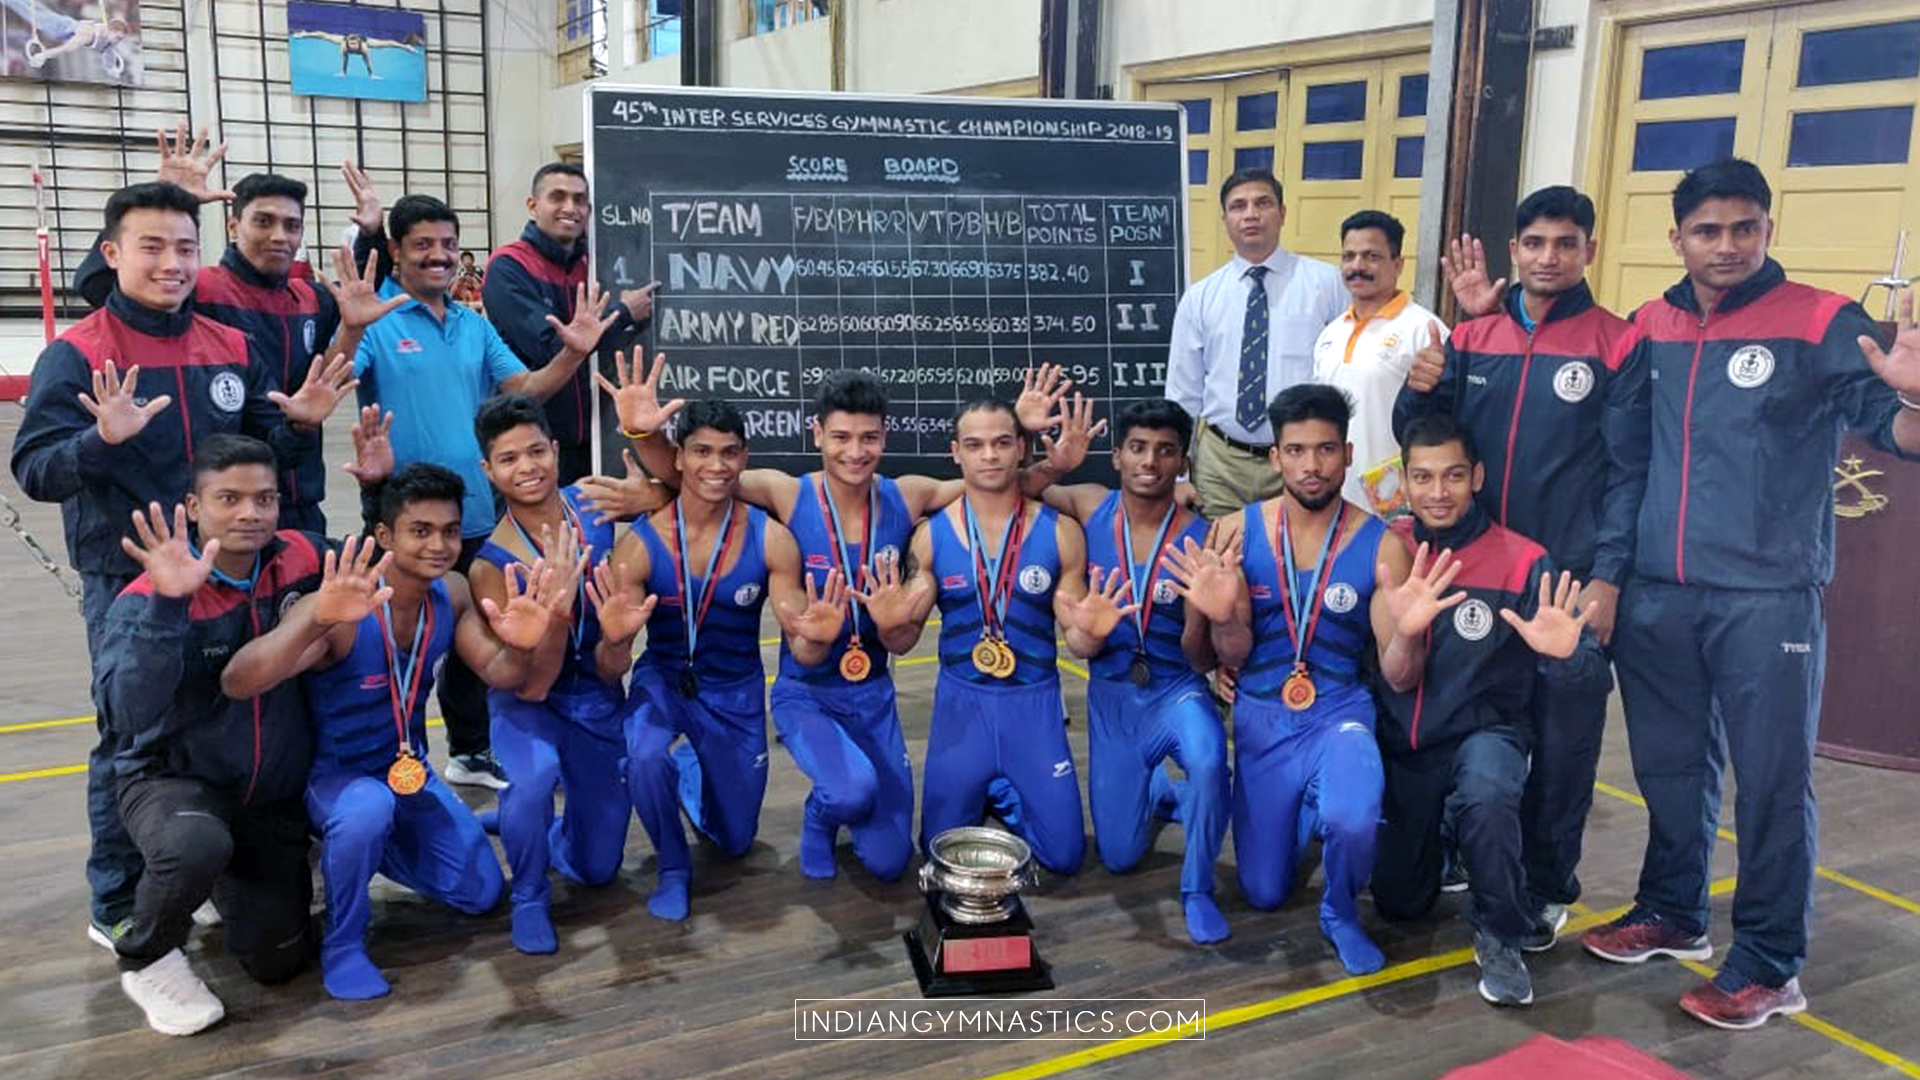 Navy wins their 10th consecutive Inter-Services Gymnastics Championships Title